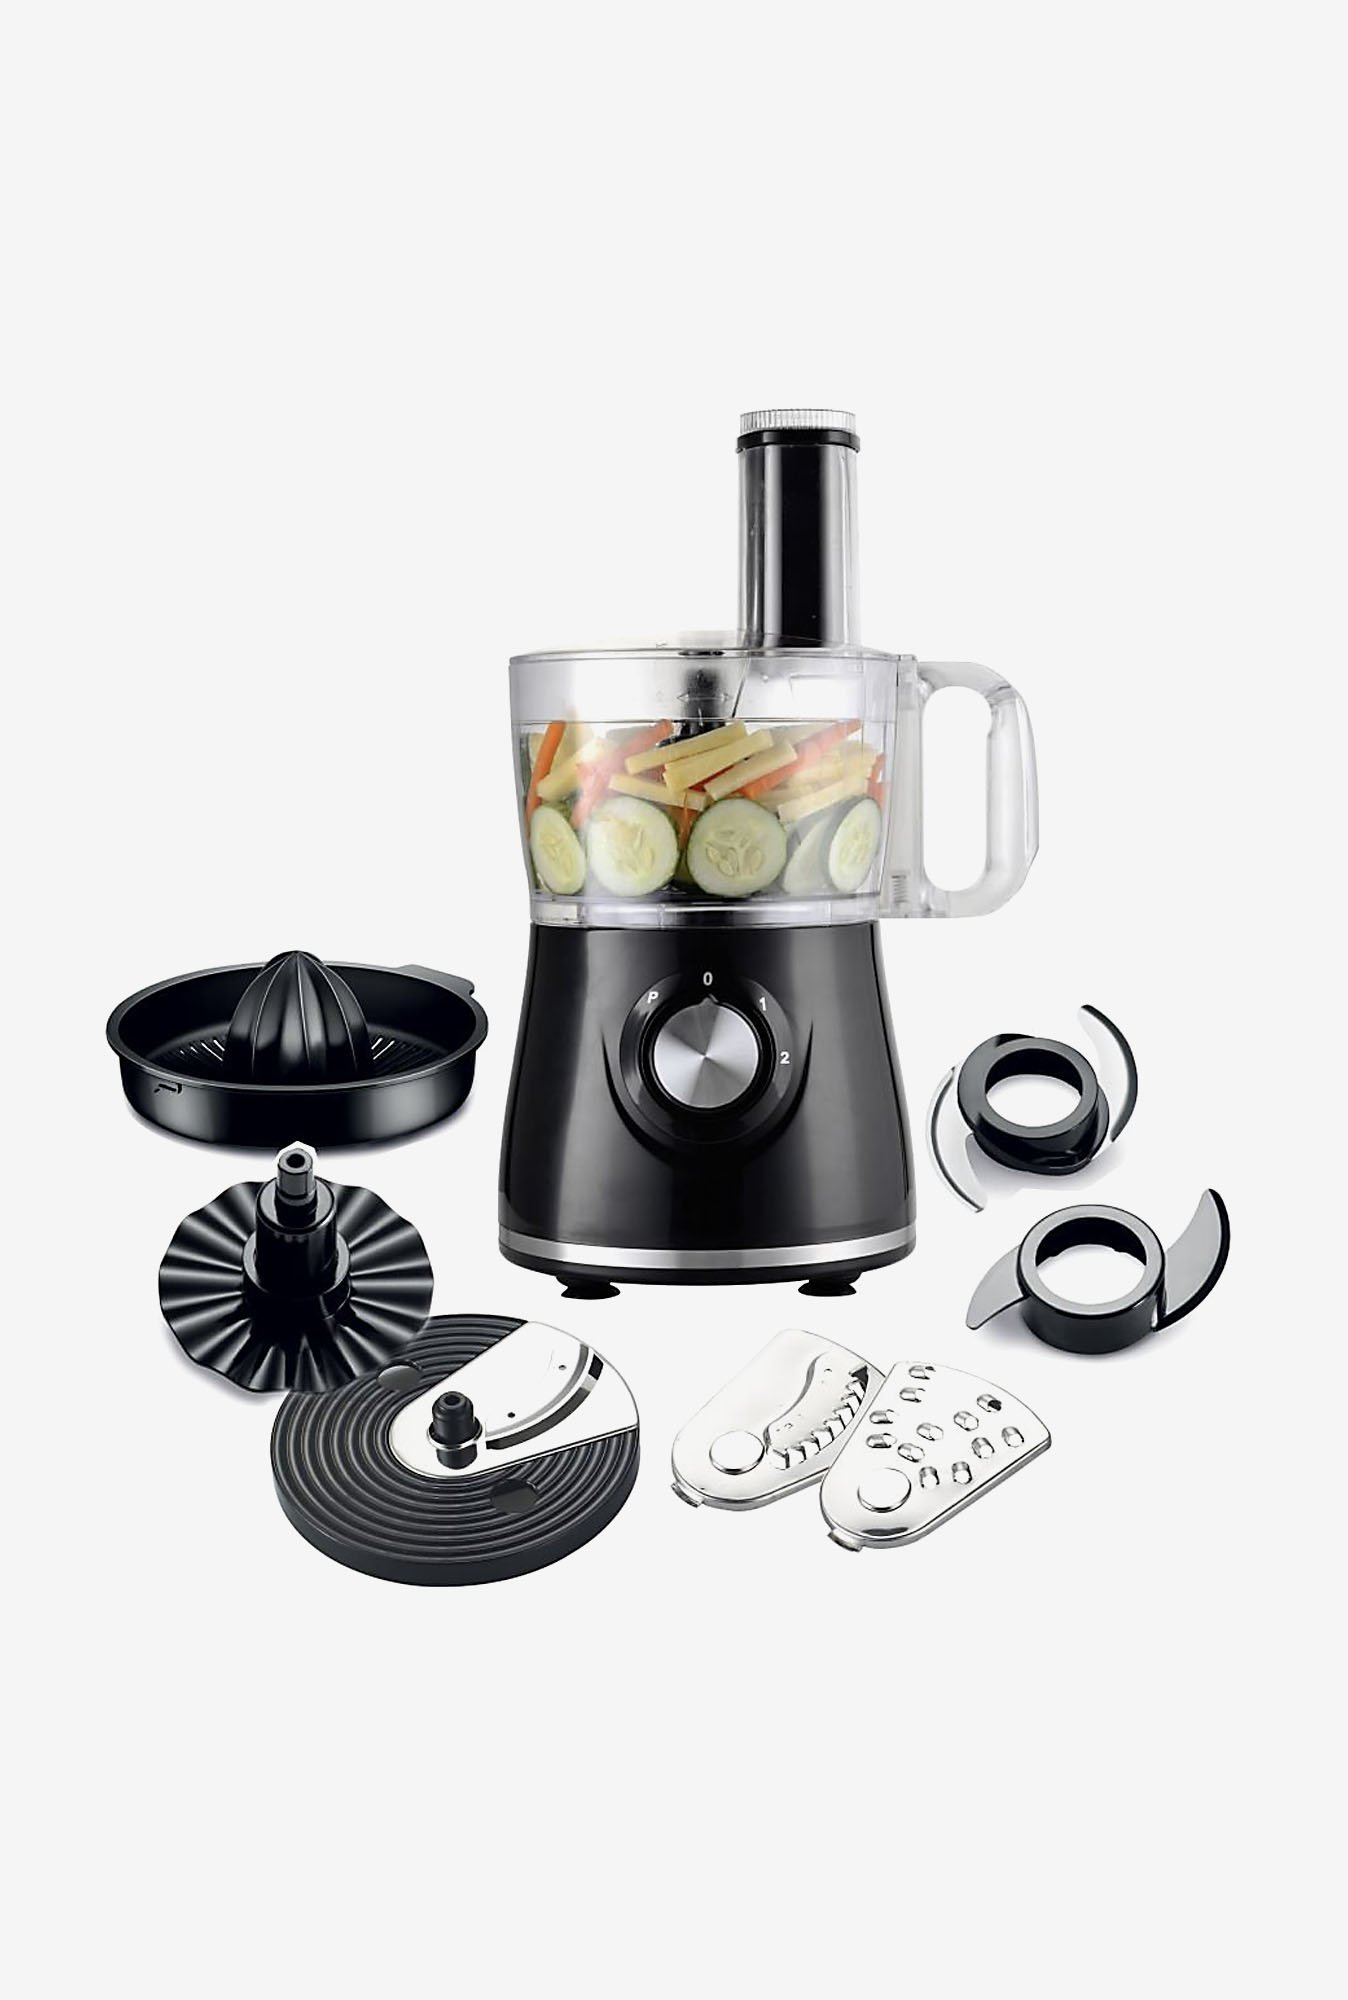 Wonderchef Prato 7 In 1 1.2 L 500 W Food Processor (Black)